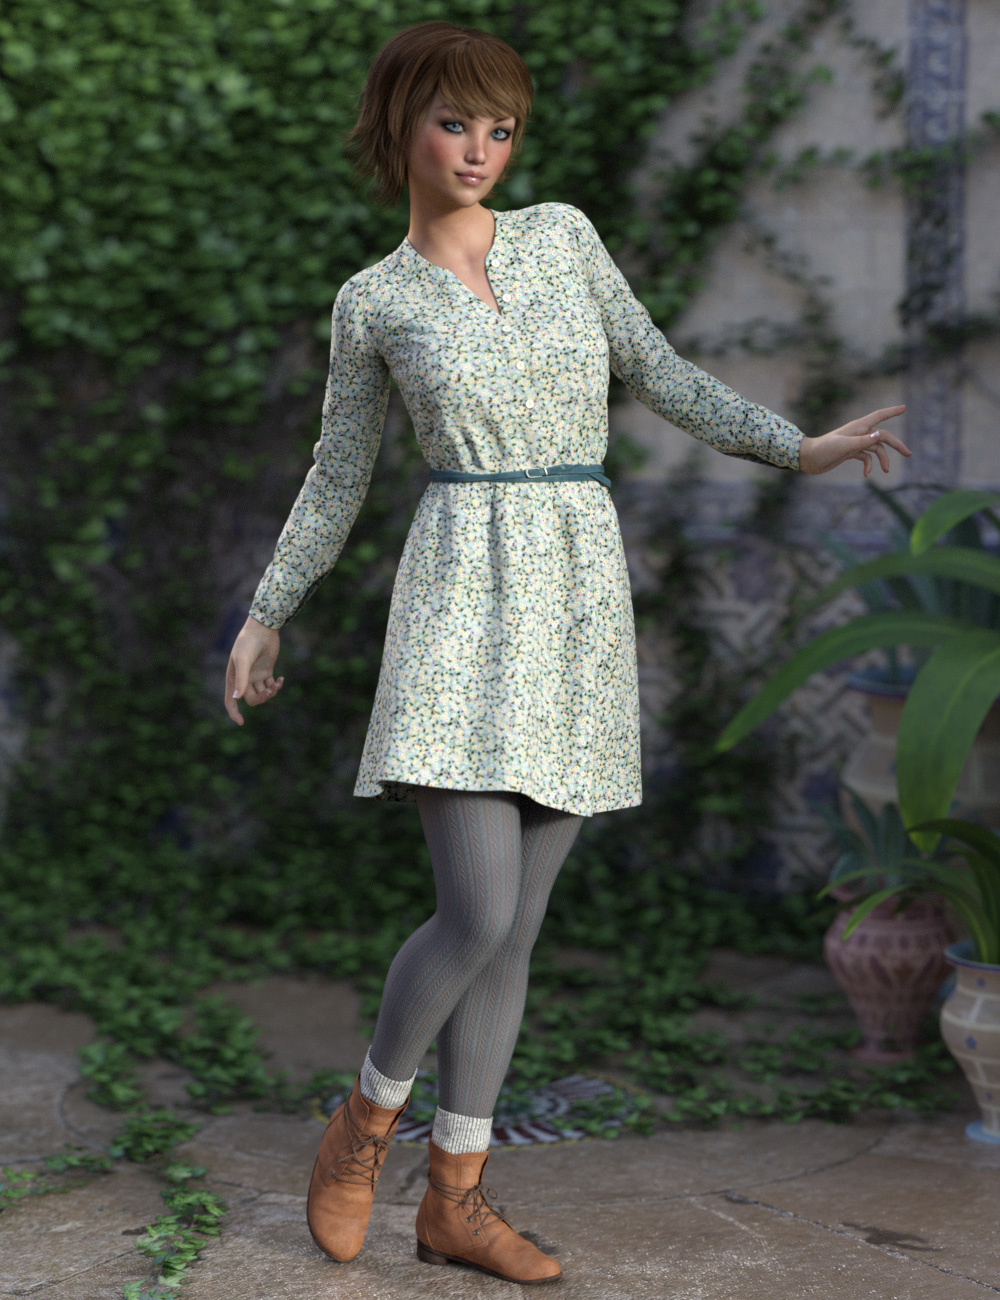 Cool Spring Outfit for Genesis 3 Female(s) by: esha, 3D Models by Daz 3D